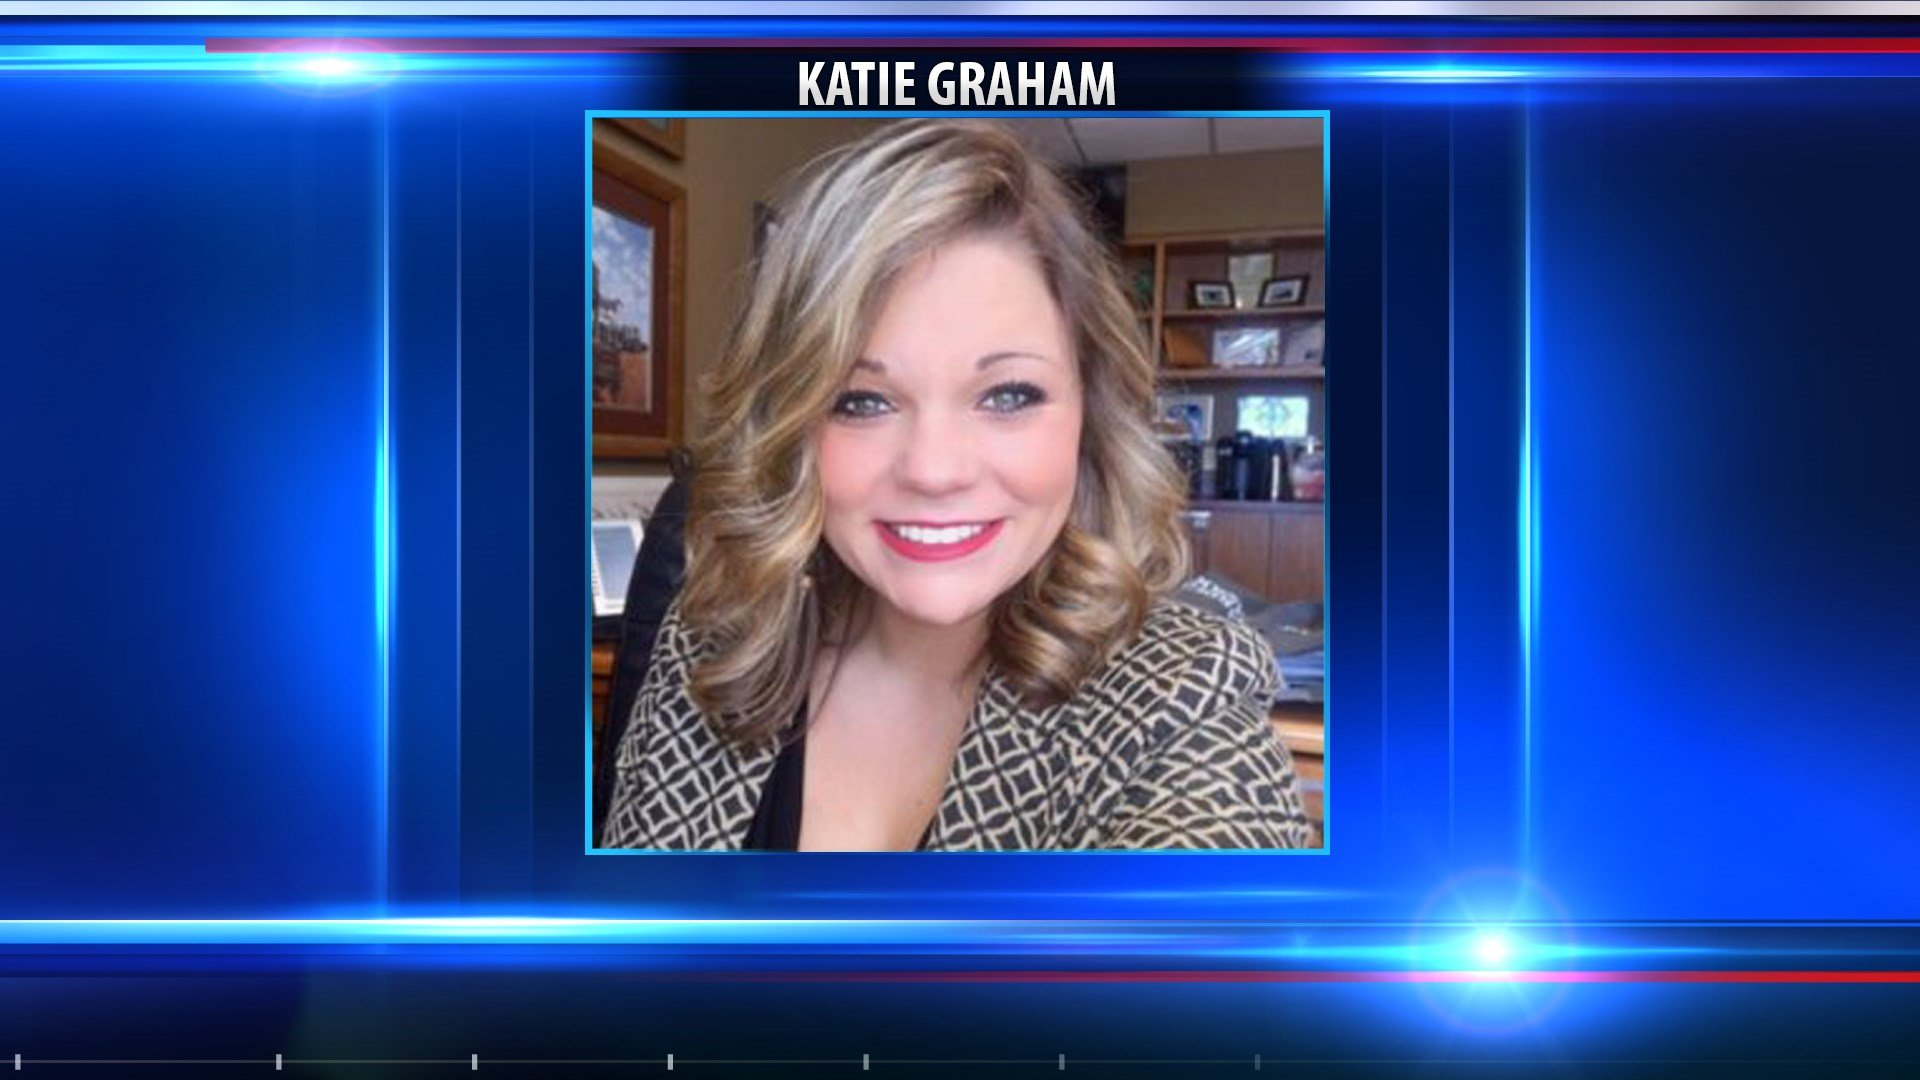 An attorney for the intern, Katie Graham, issued a statement Thursday night.